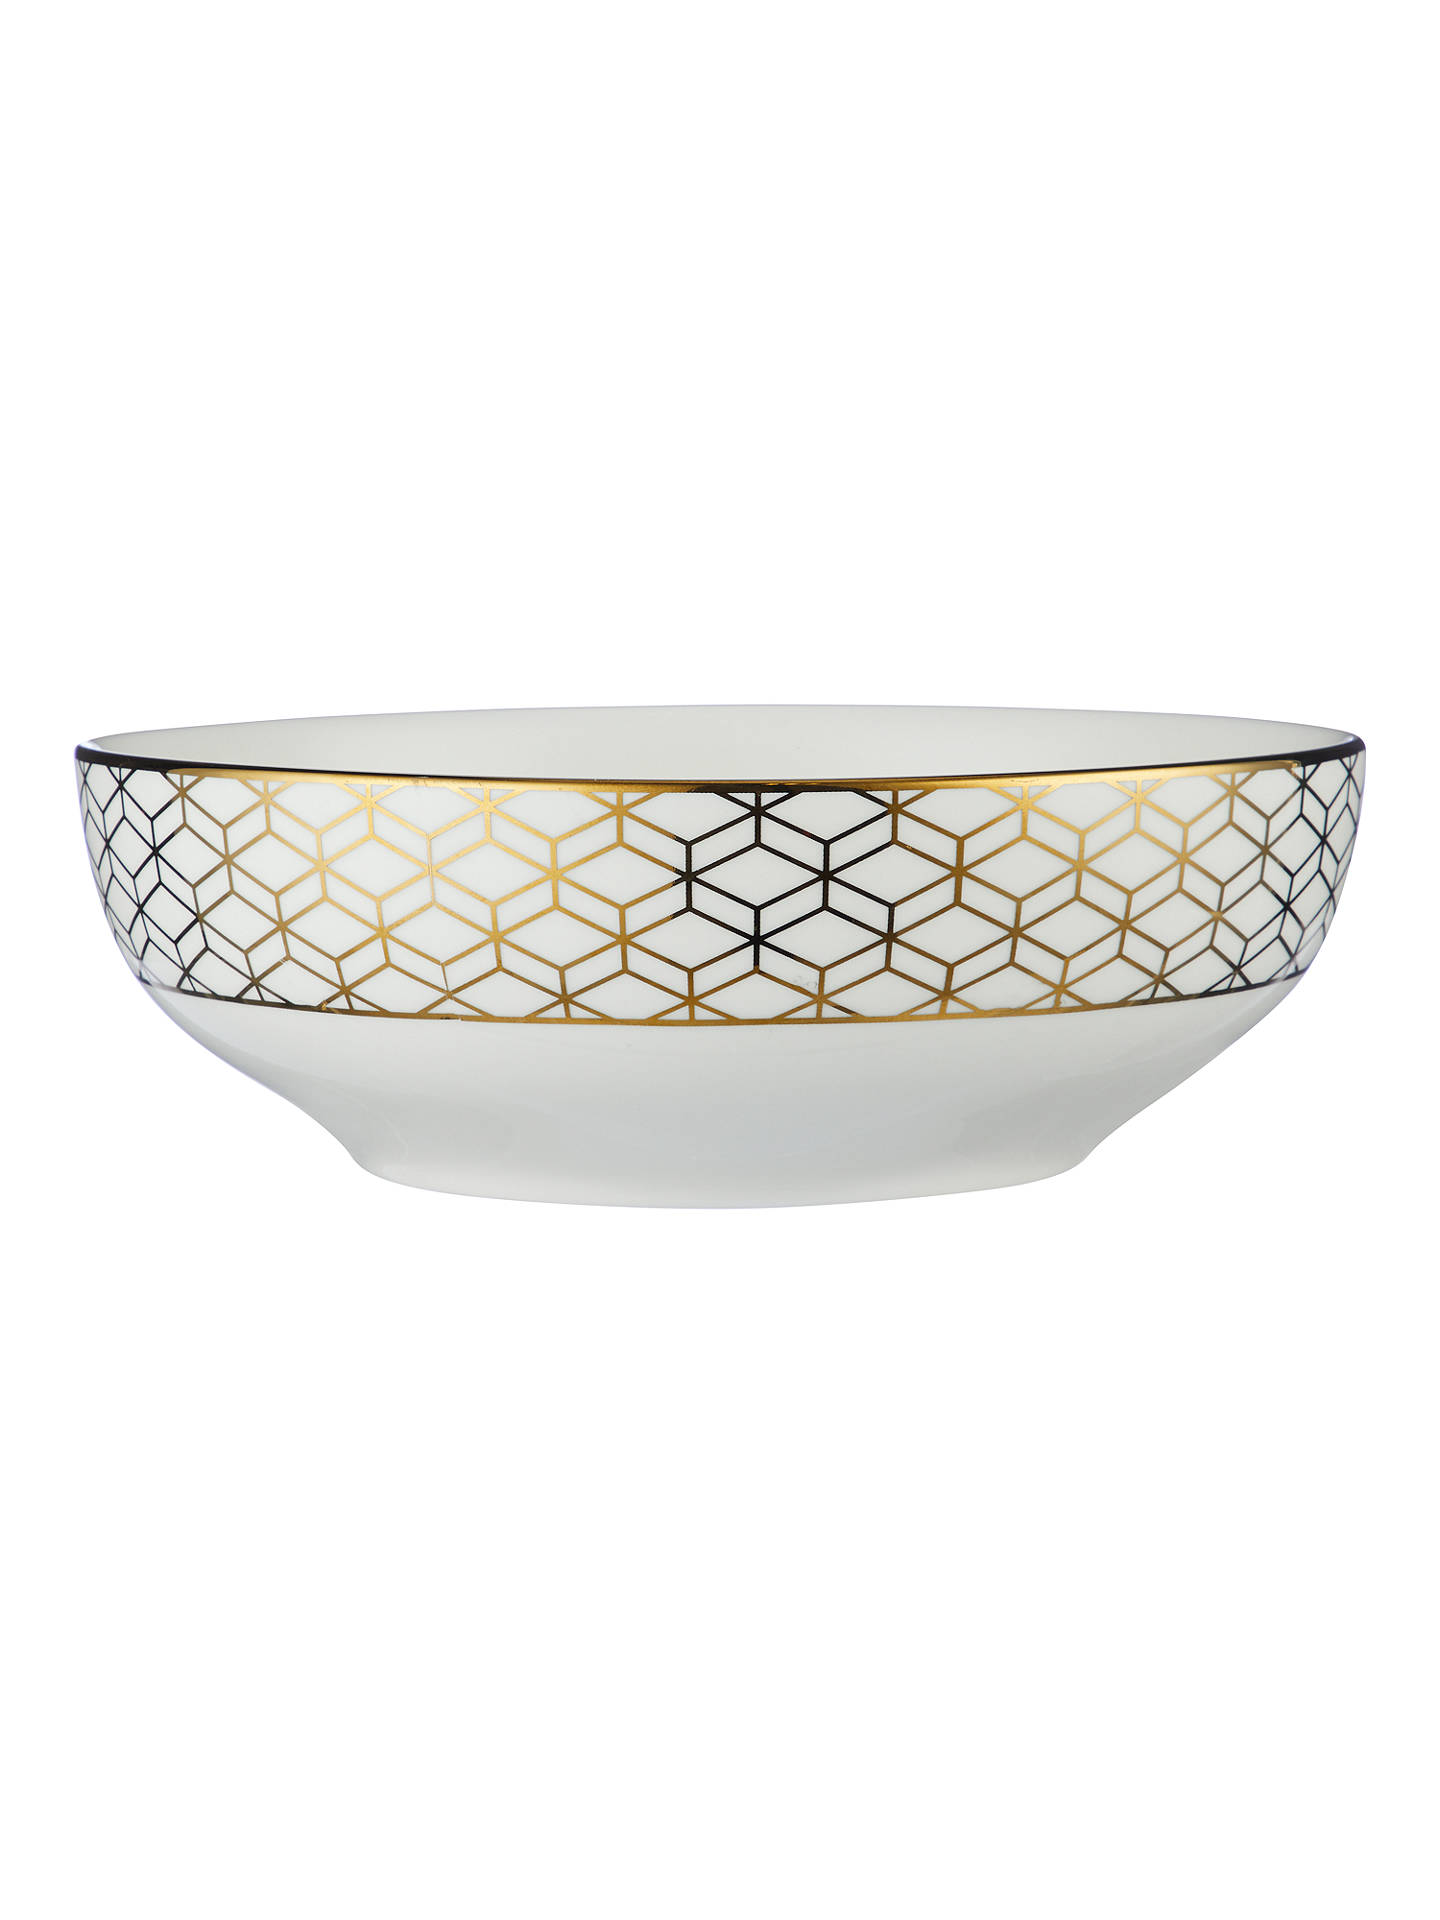 BuyJohn Lewis & Partners Geometric Decorated Serving Bowl, Gold, 23cm Online at johnlewis.com